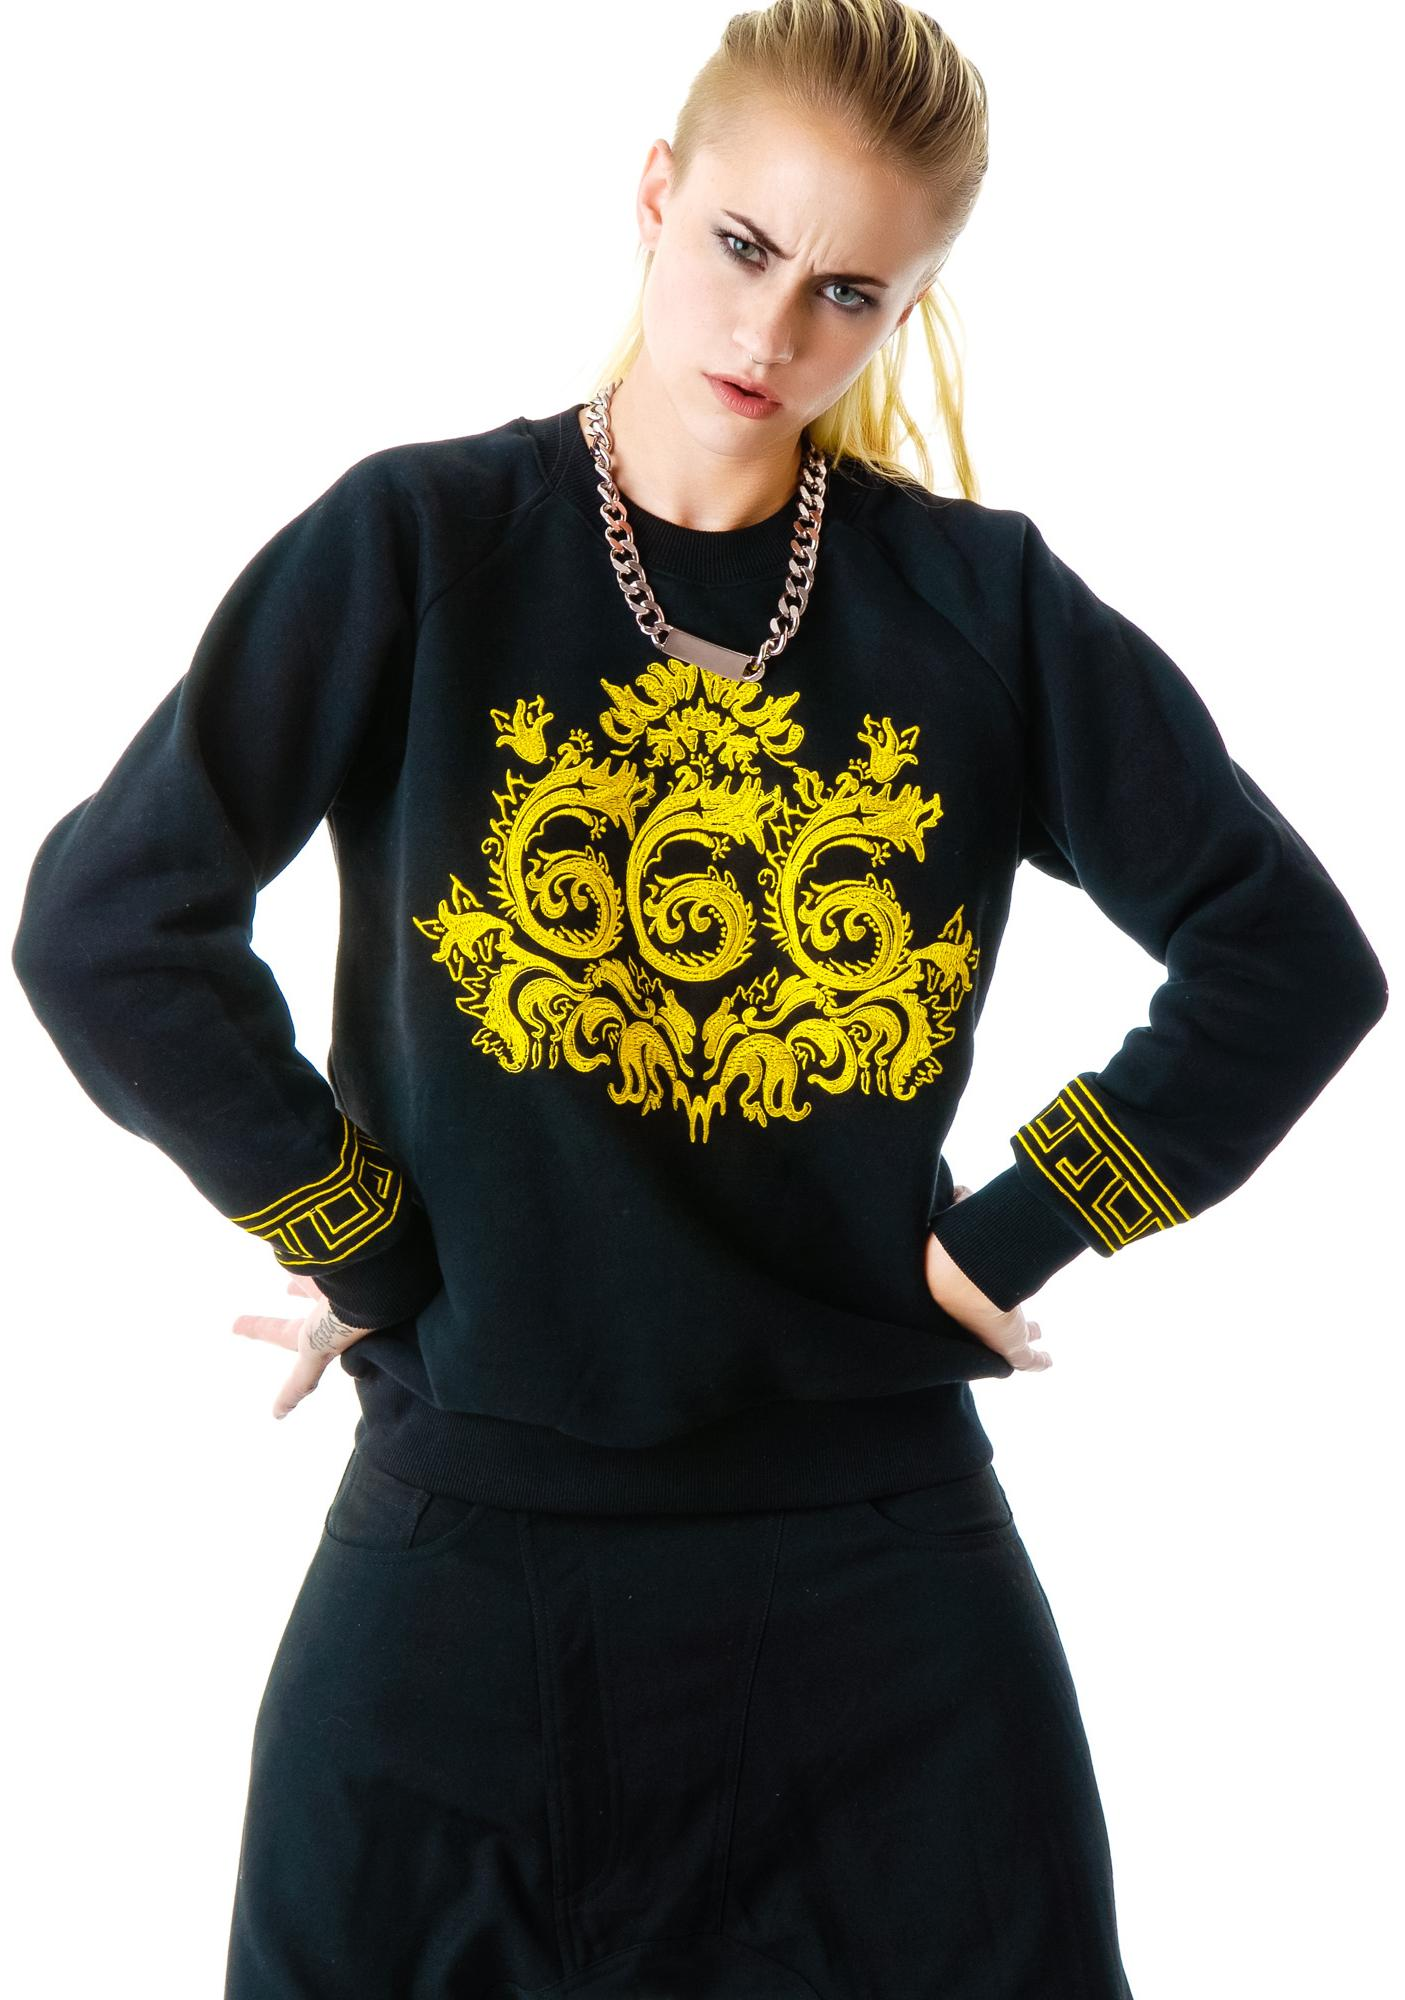 UNIF Ornate6 Sweatshirt